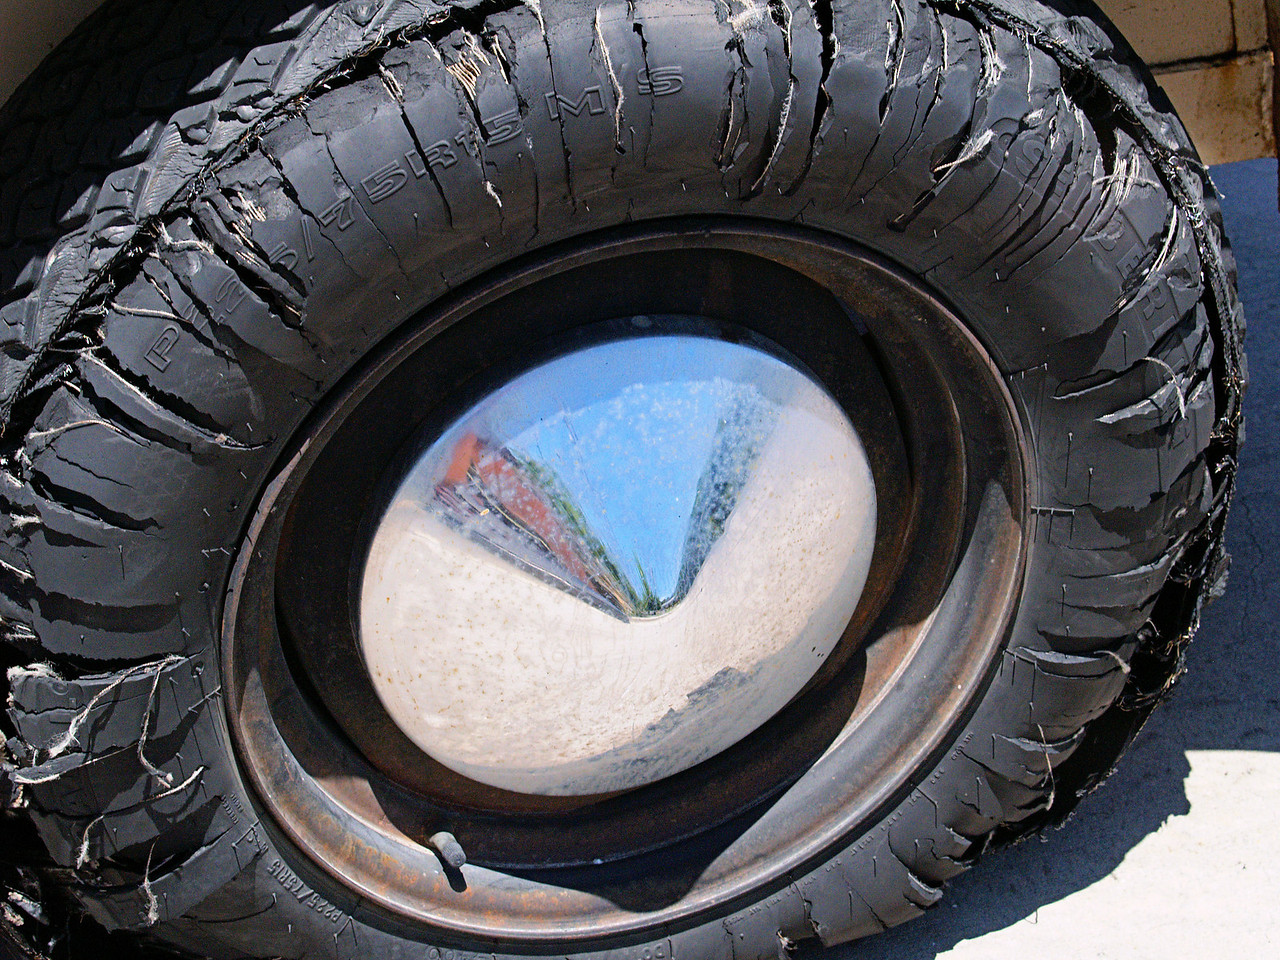 OLYMPUS DIGITAL CAMERA--One of two tires to blow out on the horse trailer.